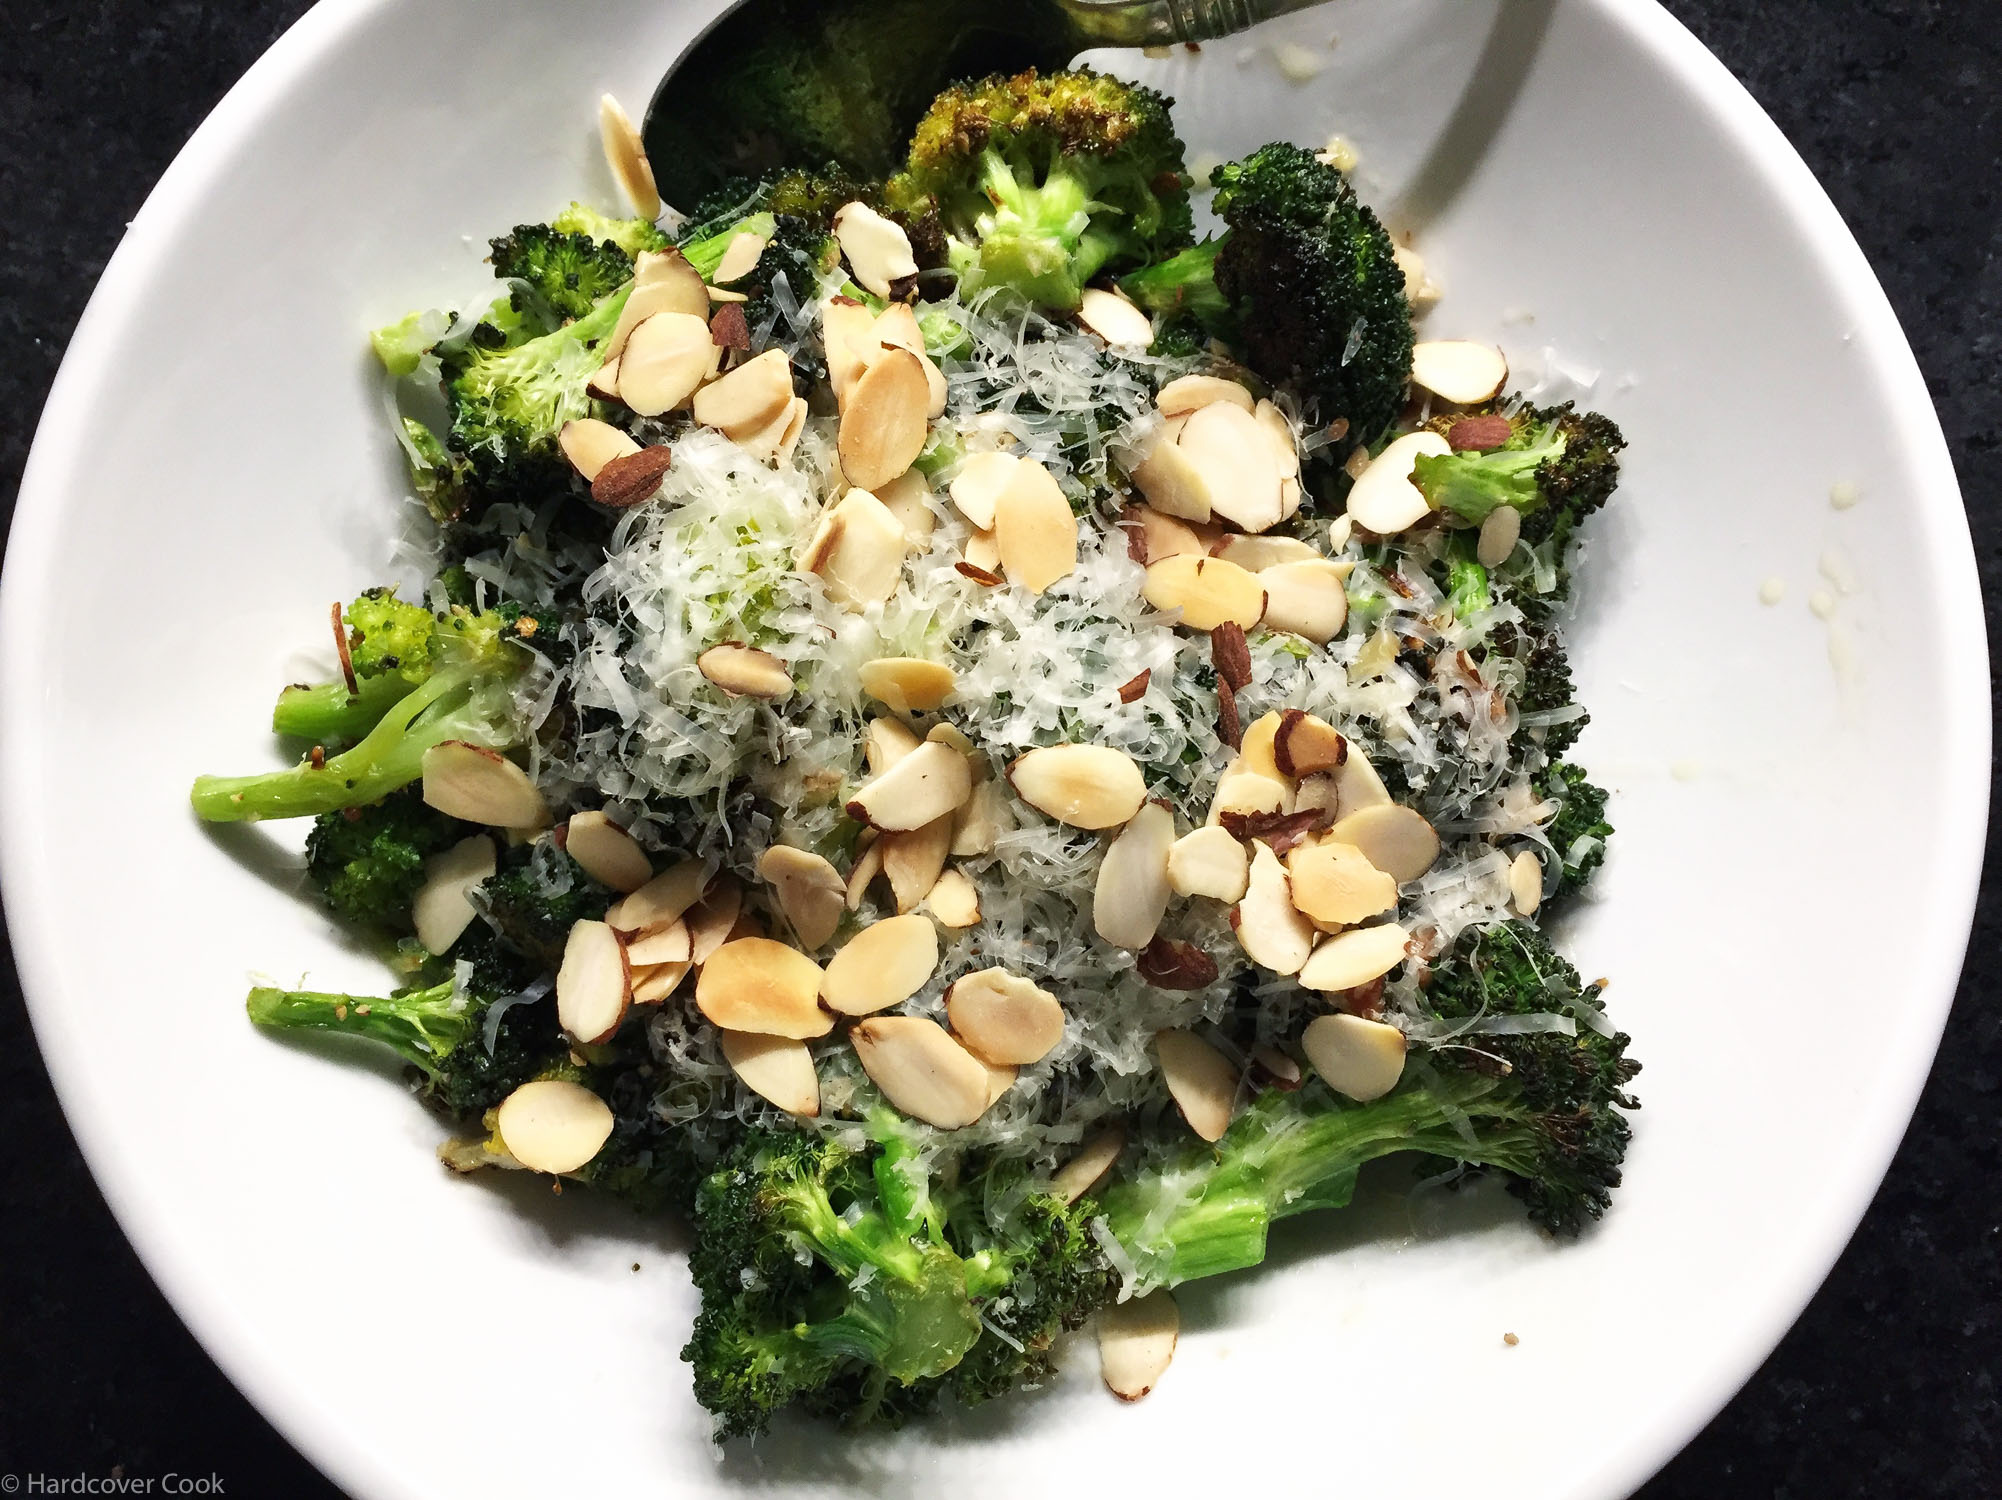 Broccoli Bagna Cauda from The Food52 Cookbook